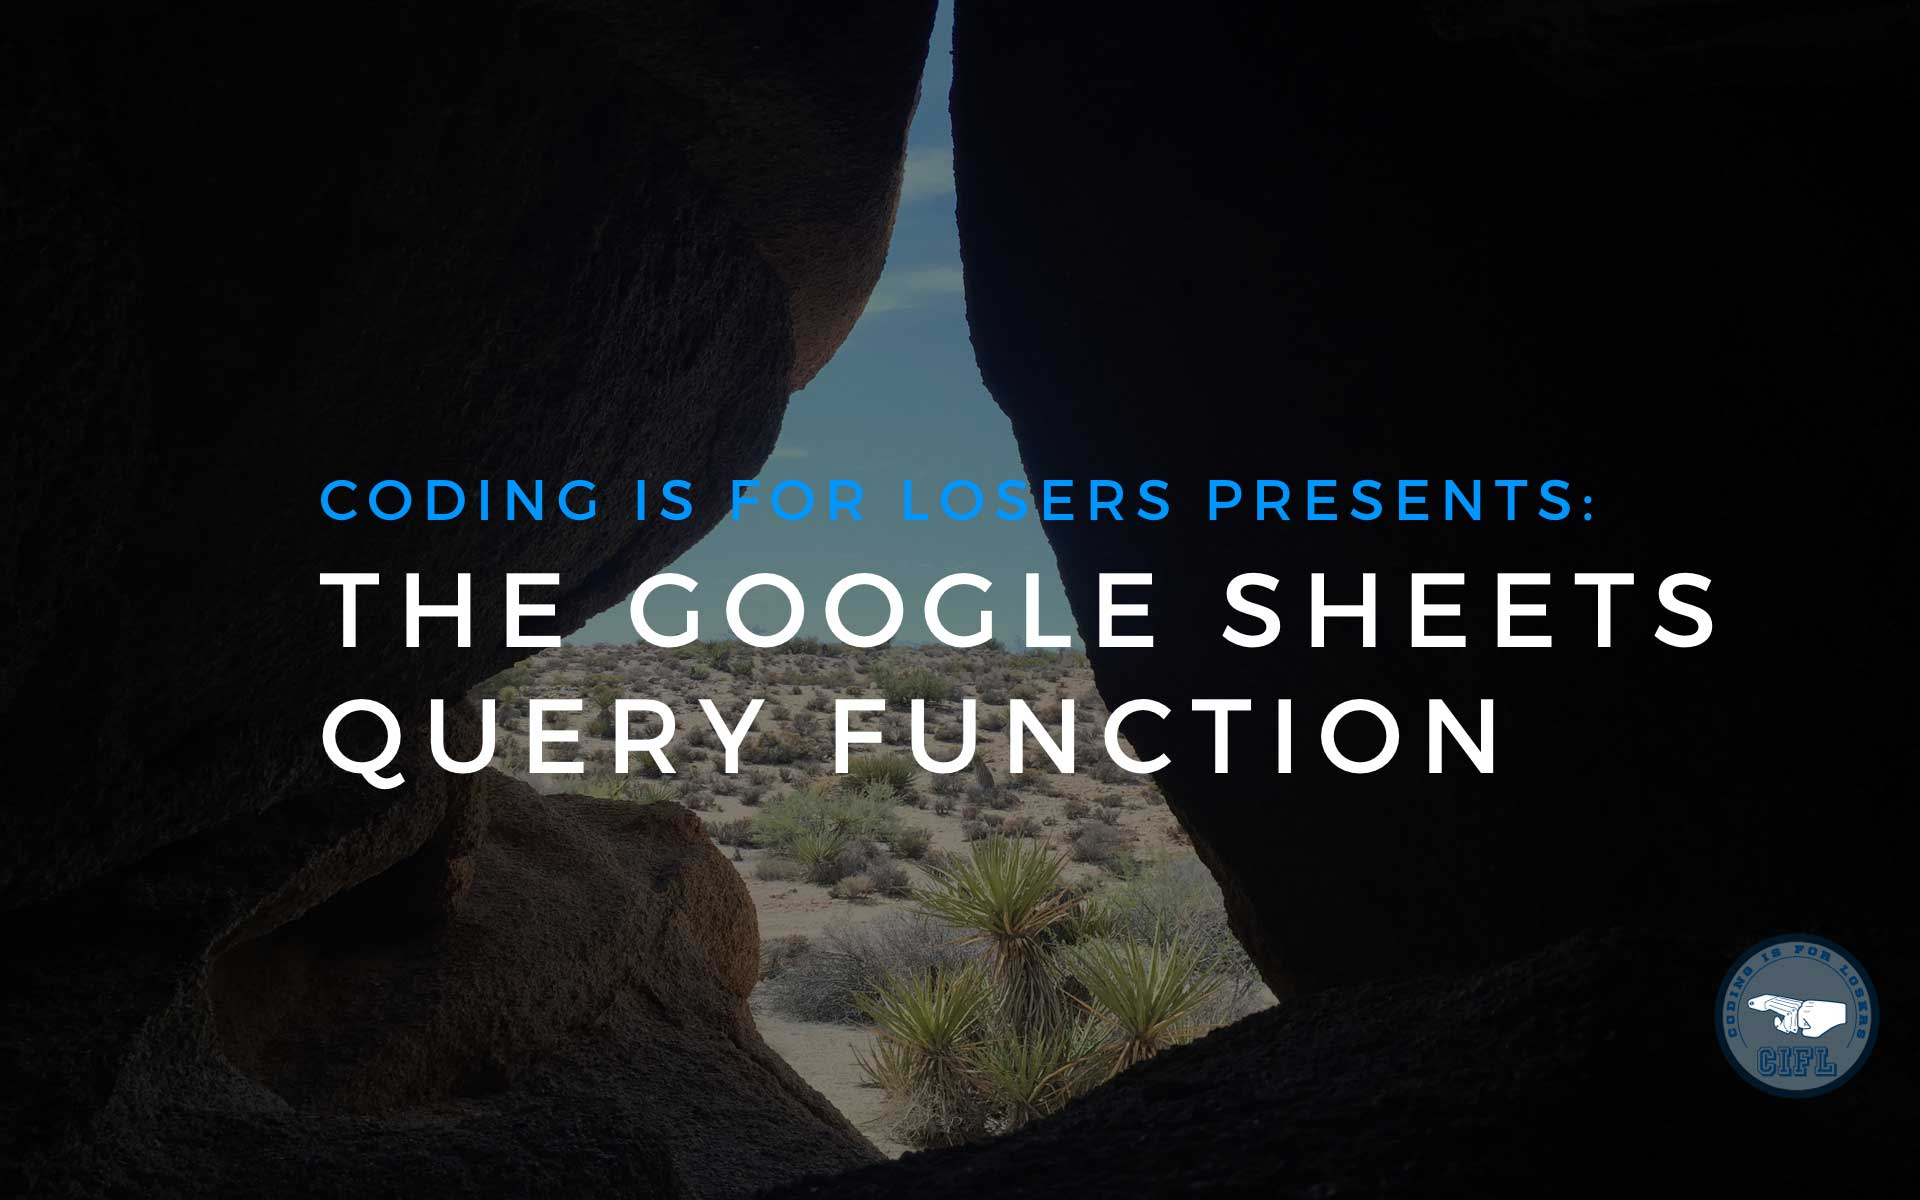 The Google Sheets Query Function